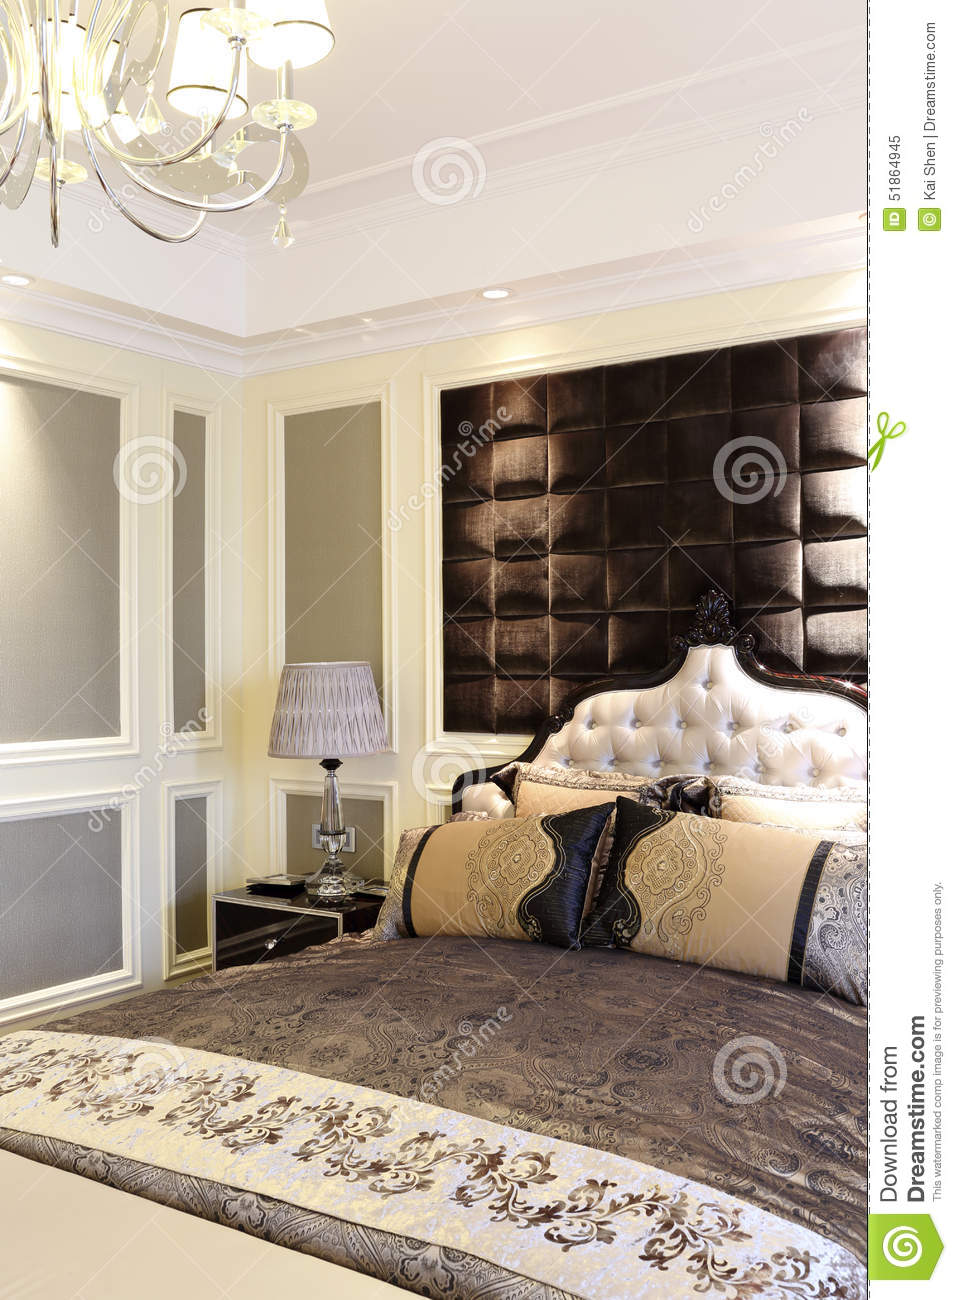 The Bed Stock Photo Image 51864945